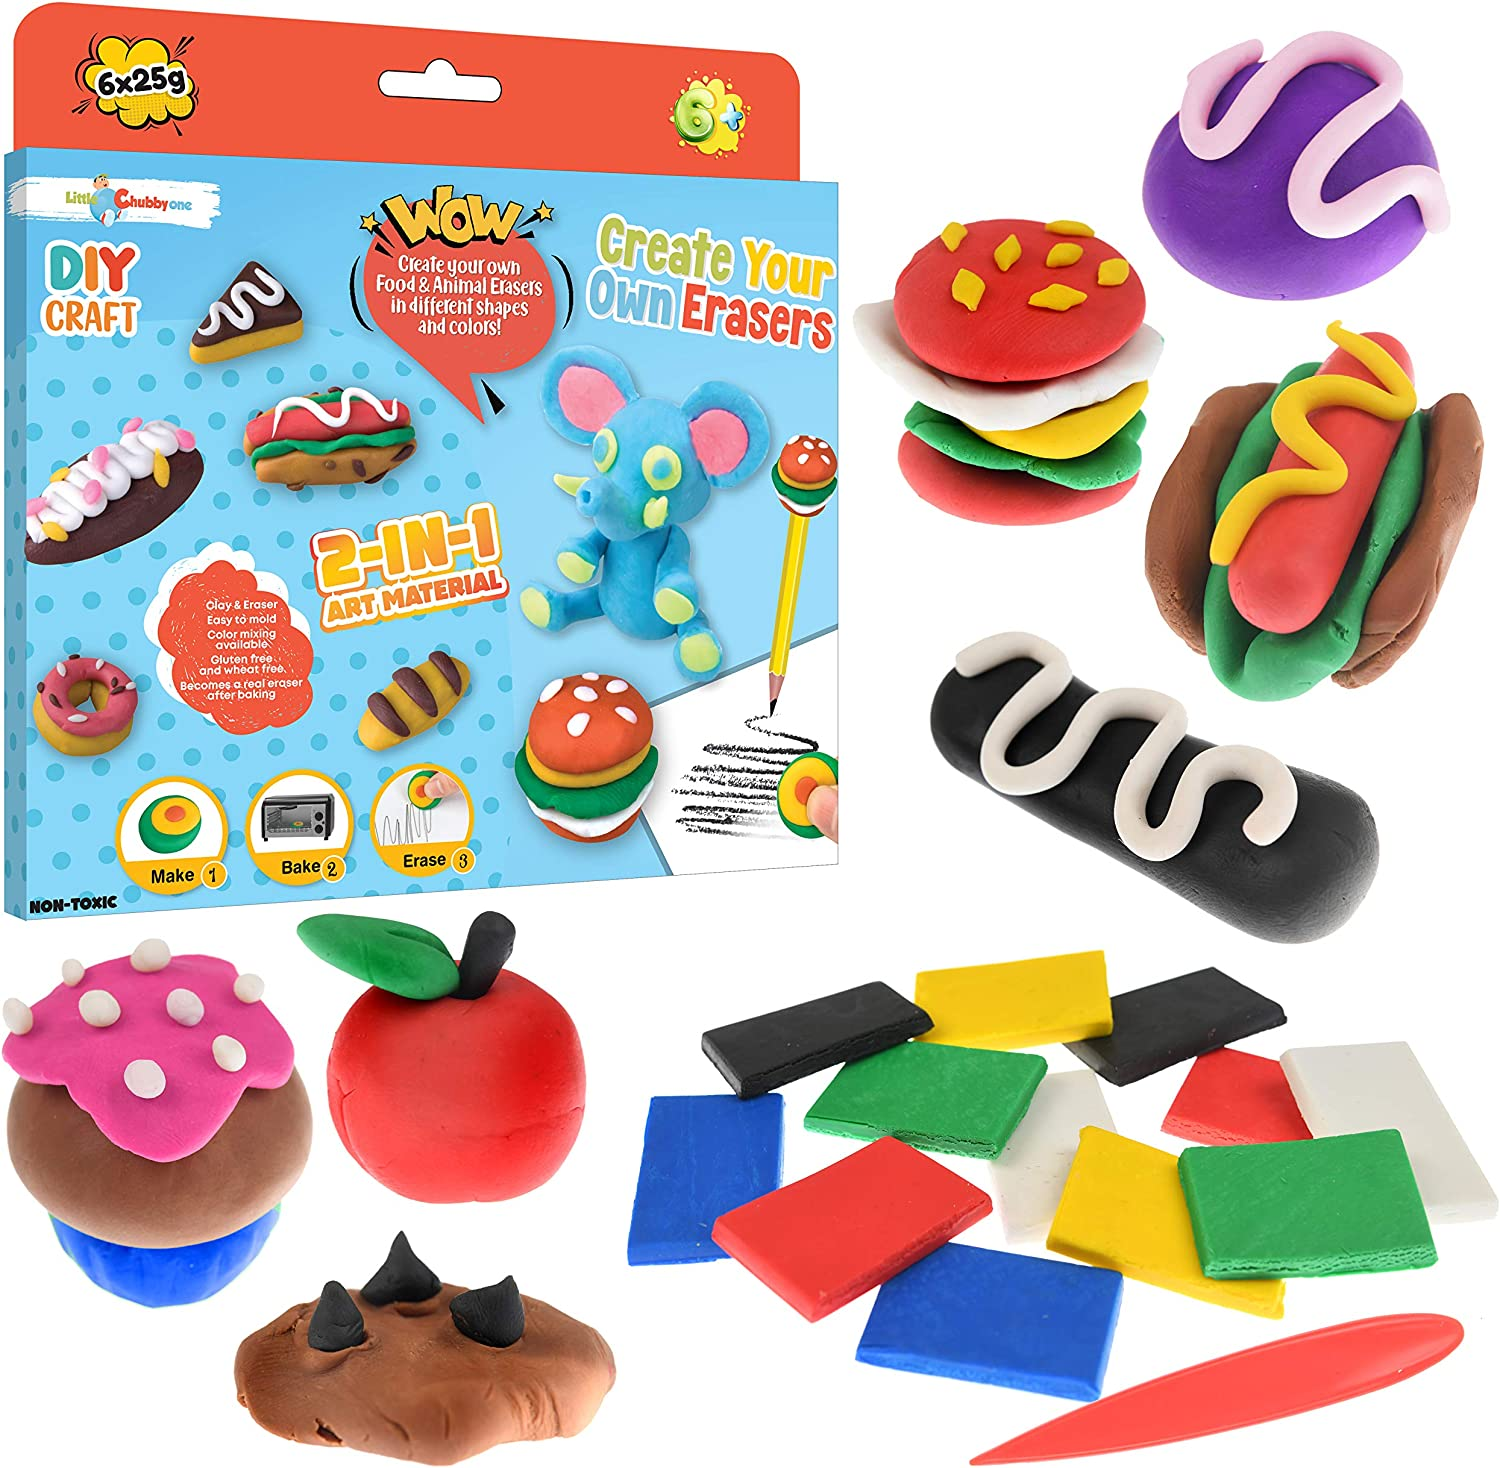 Little Chubby One Create Your Own Food Erasers - DIY Clay Craft Kit - Create Mini Food and Animal Erasers at Home Promotes Creativity and Imaginative Play Safe and Non-Toxic Perfect Gift for Kids